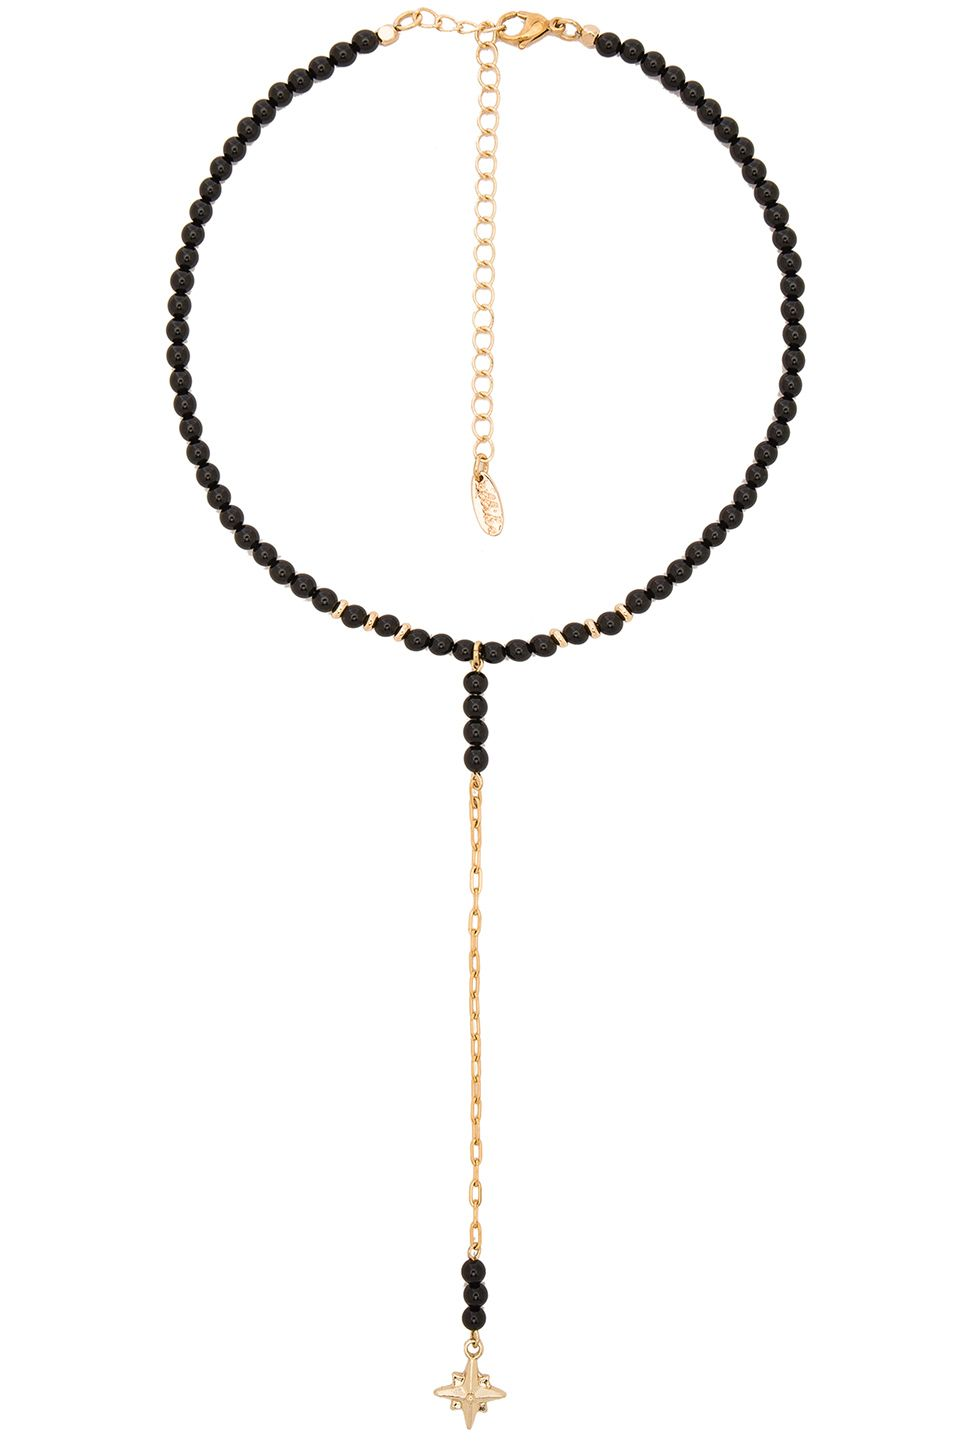 Ettika Rope Beaded Layered Choker in Metallic Gold qb7JpN